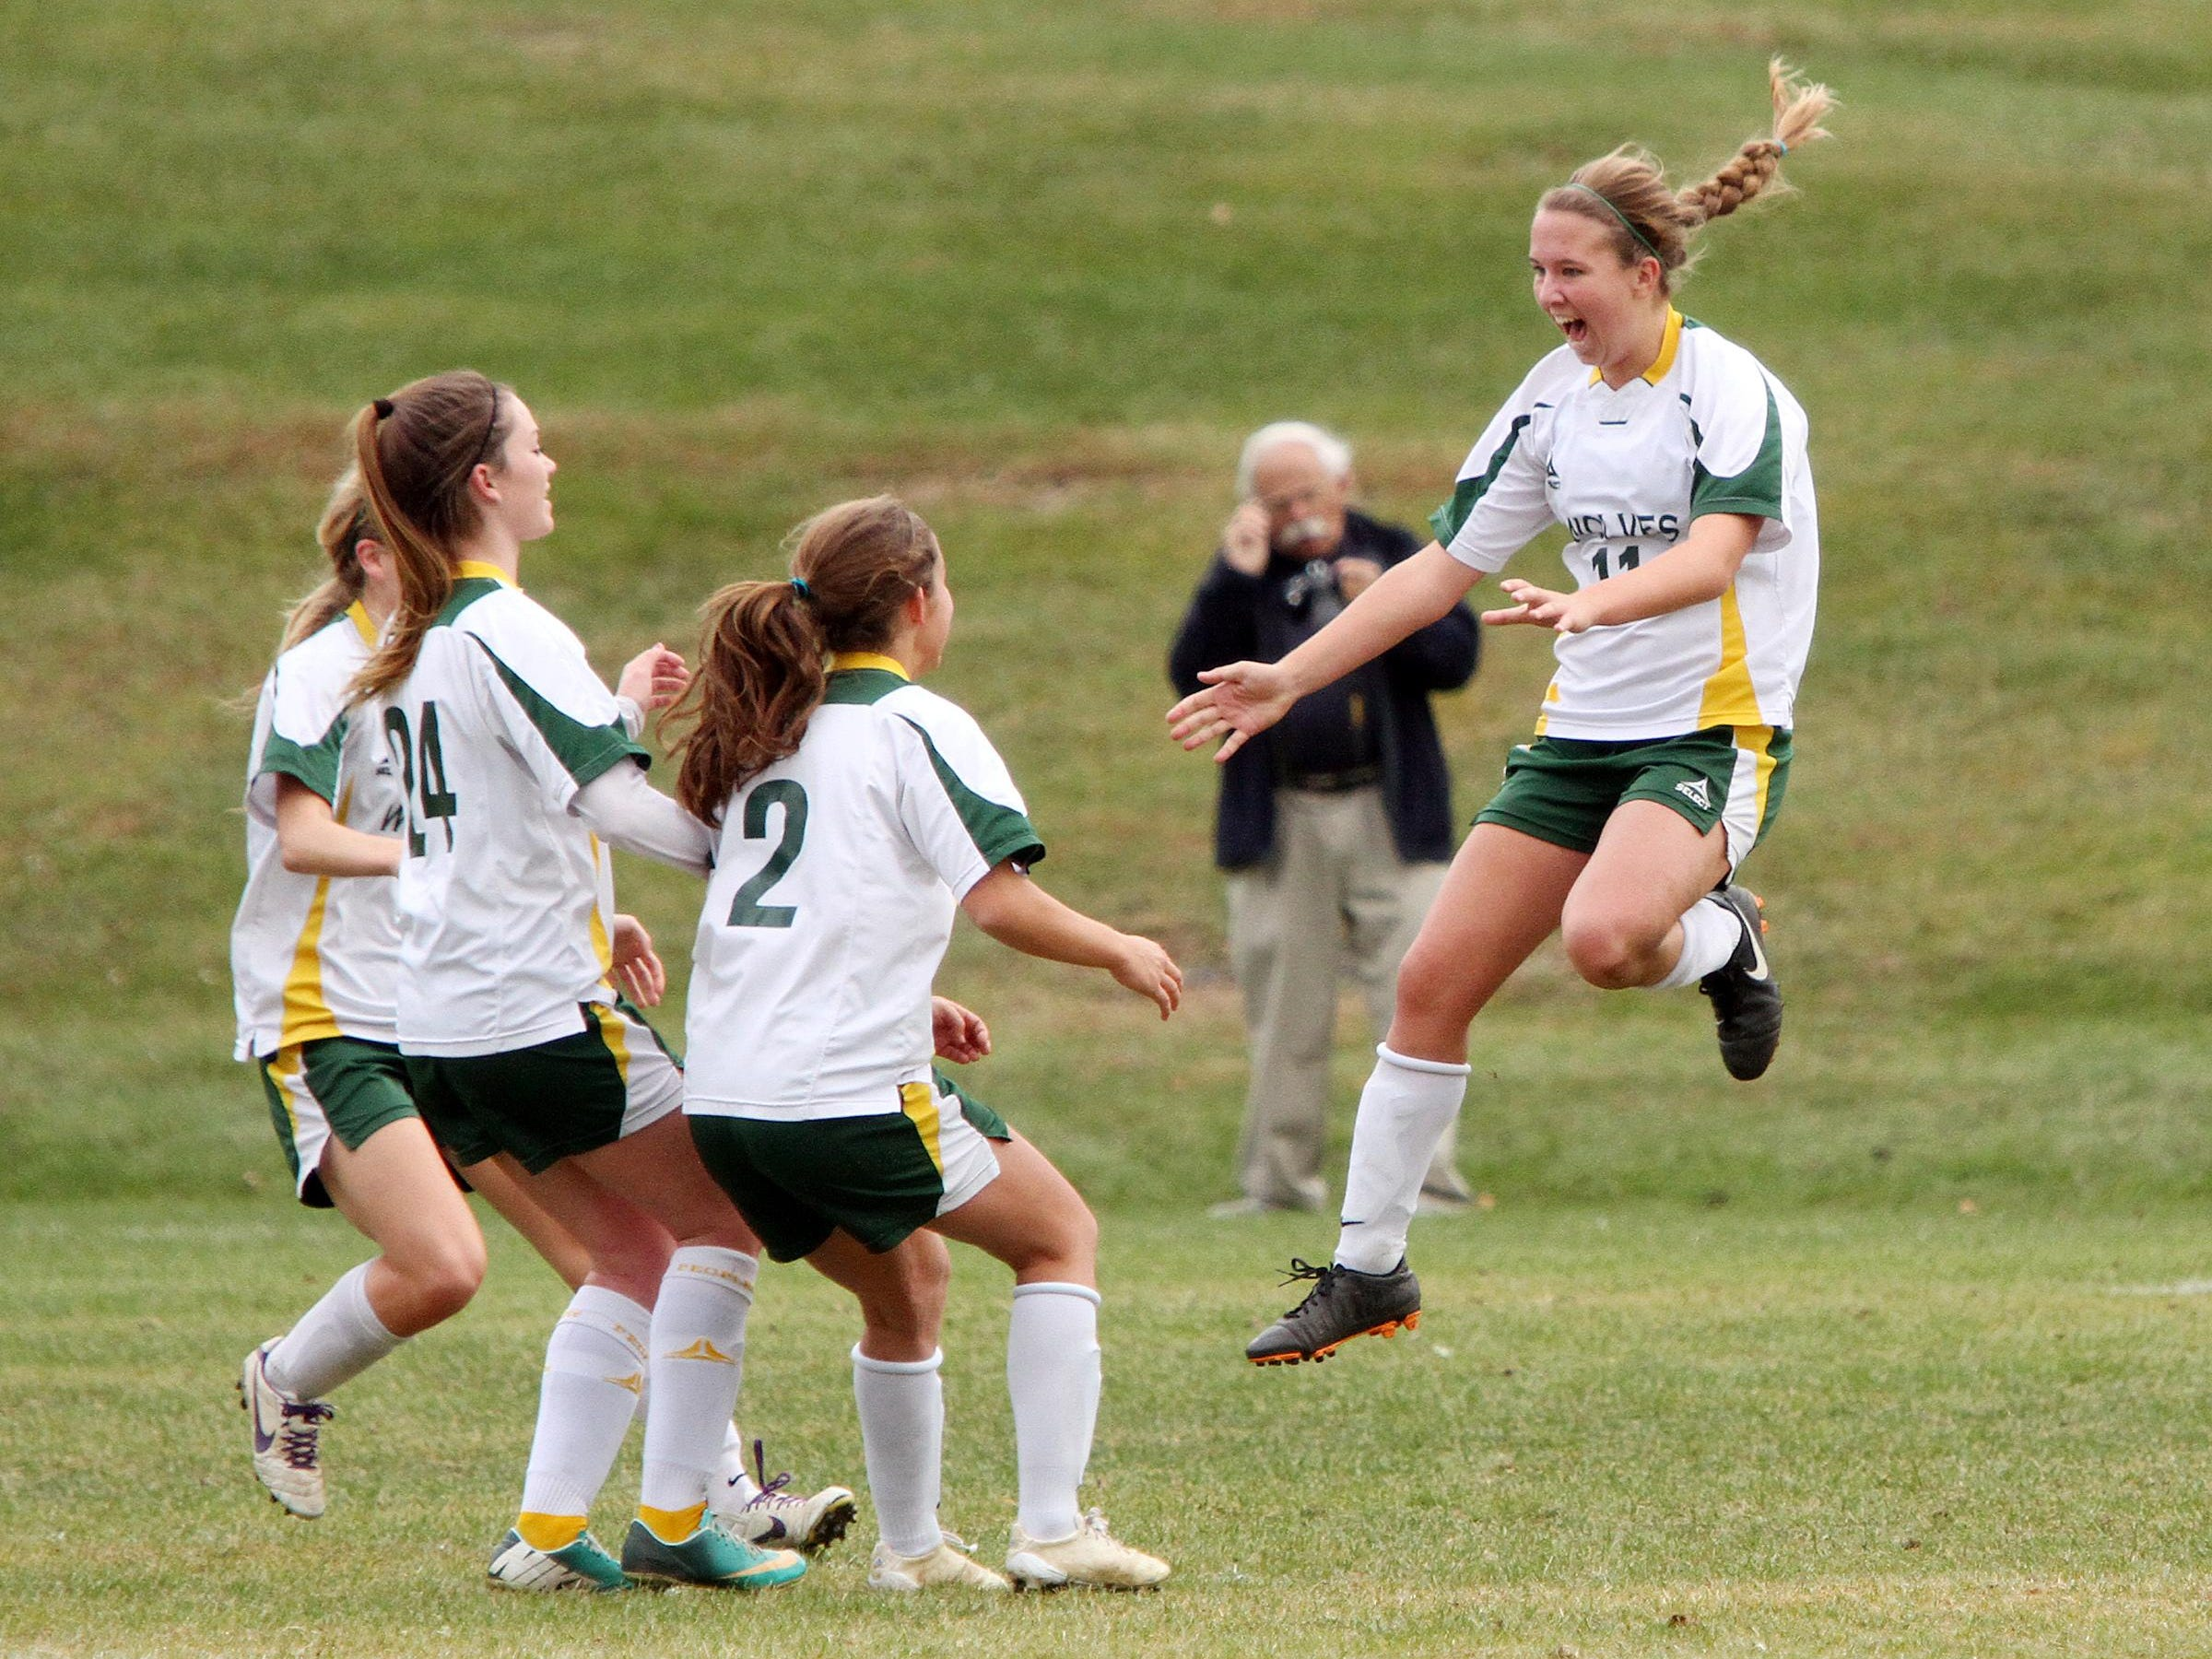 Peoples Academy's Katie Stames leaps in celebration after her penalty kick goal in the second half of the Wolves' 4-1 win over Thetford in the Division III girls soccer state championship game at Williamtown High School on Saturday.